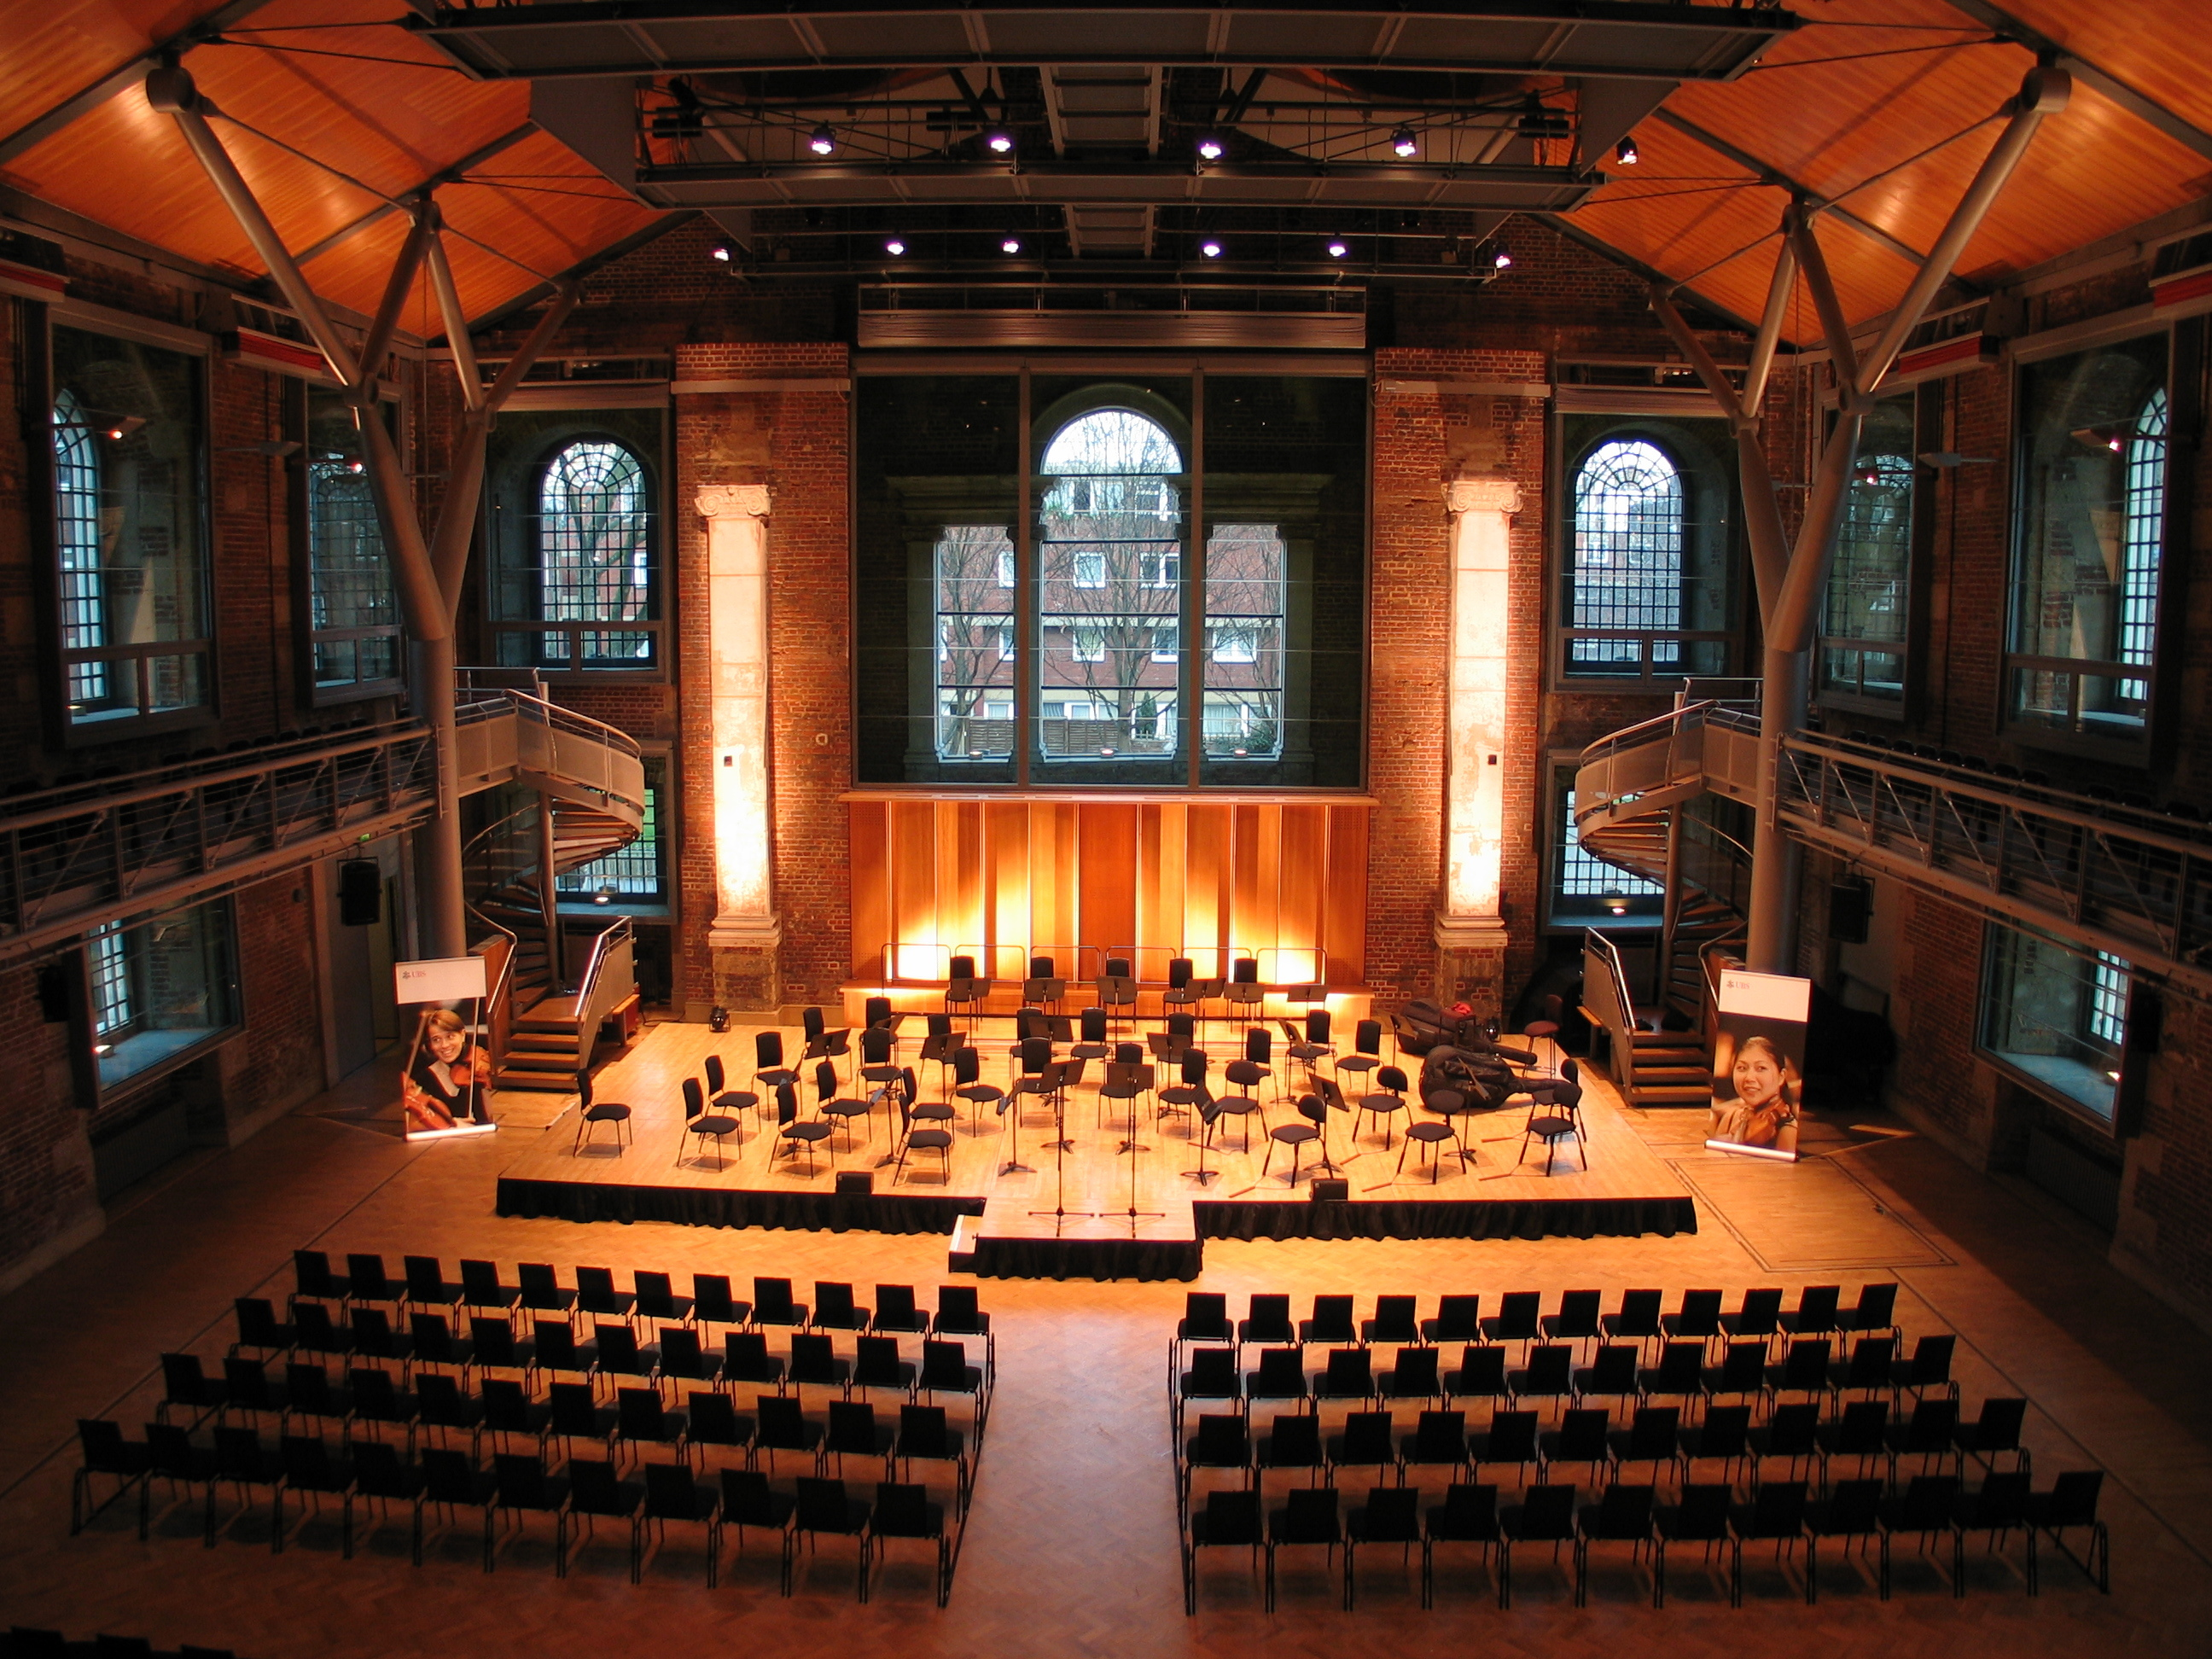 Hire Lso St Lukes | Jerwood Hall | VenueScanner